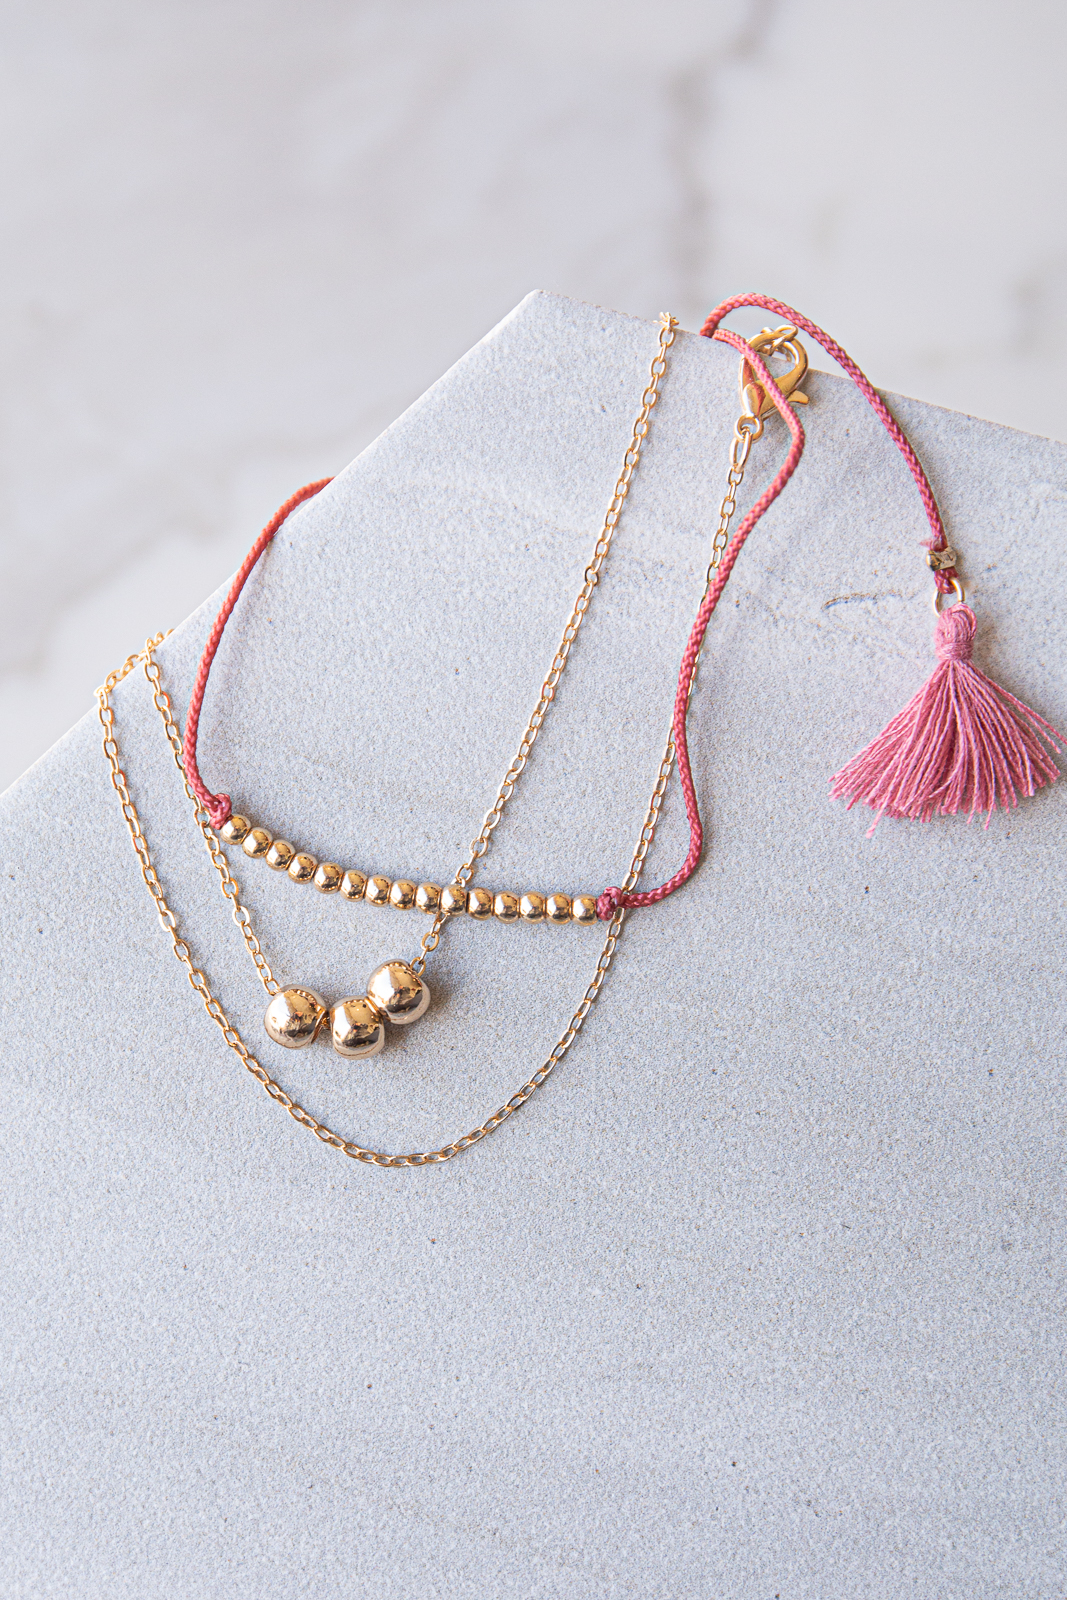 Gold and Berry Beaded Layered Bracelet with Tassel Details